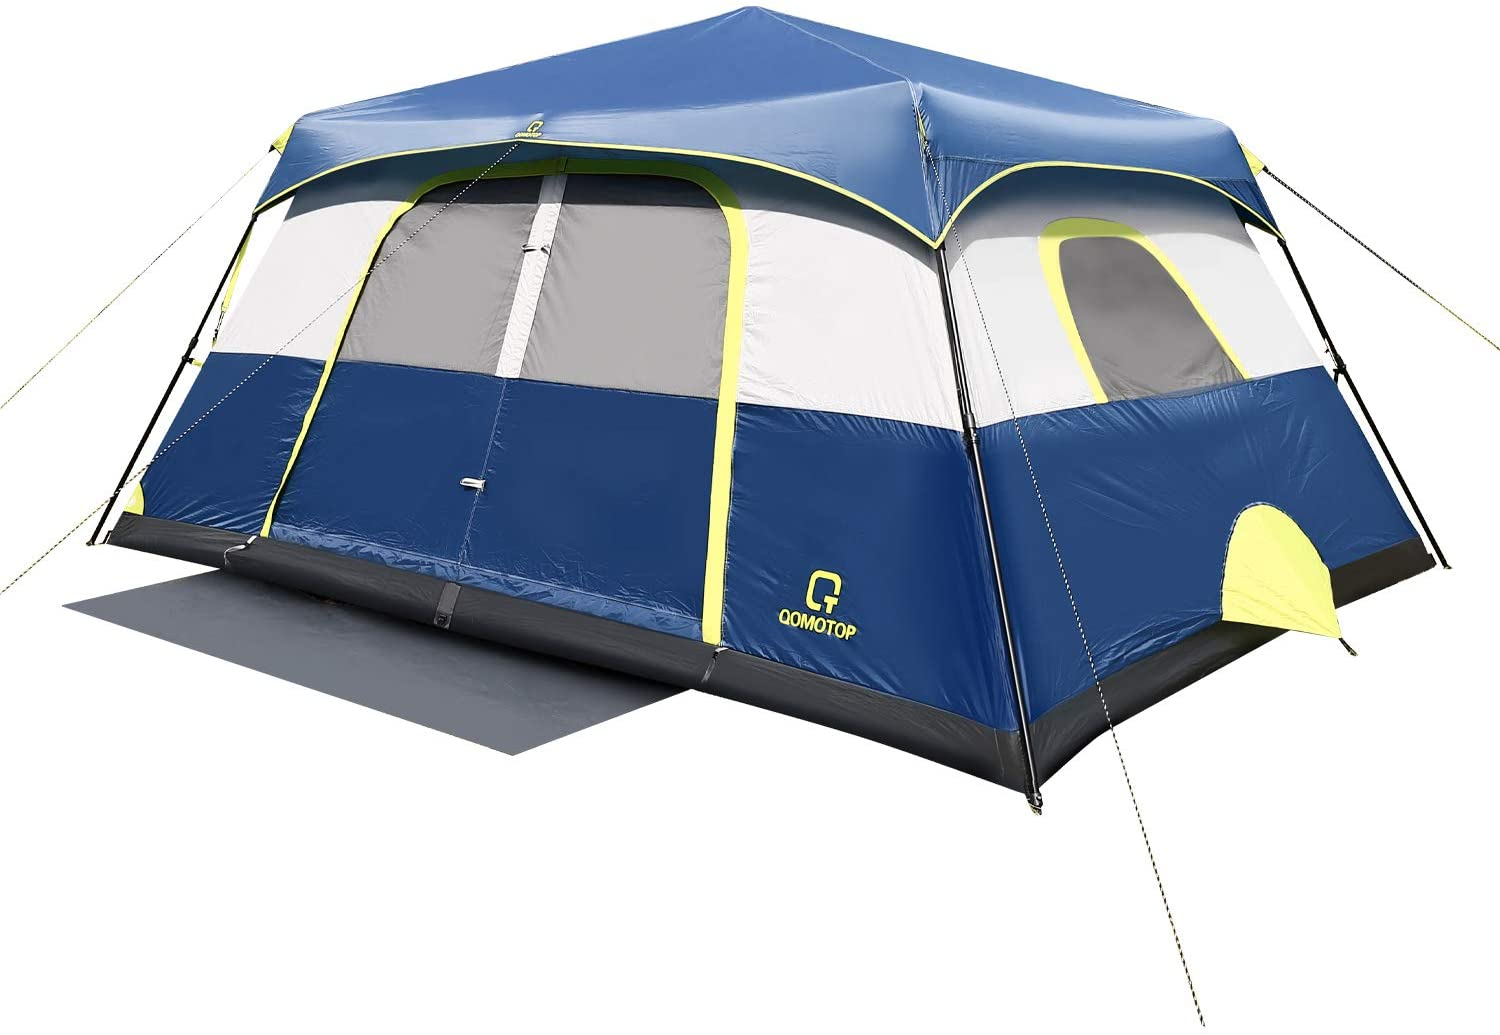 OT QOMOTOP Waterproof 4-10 Person Family Tent